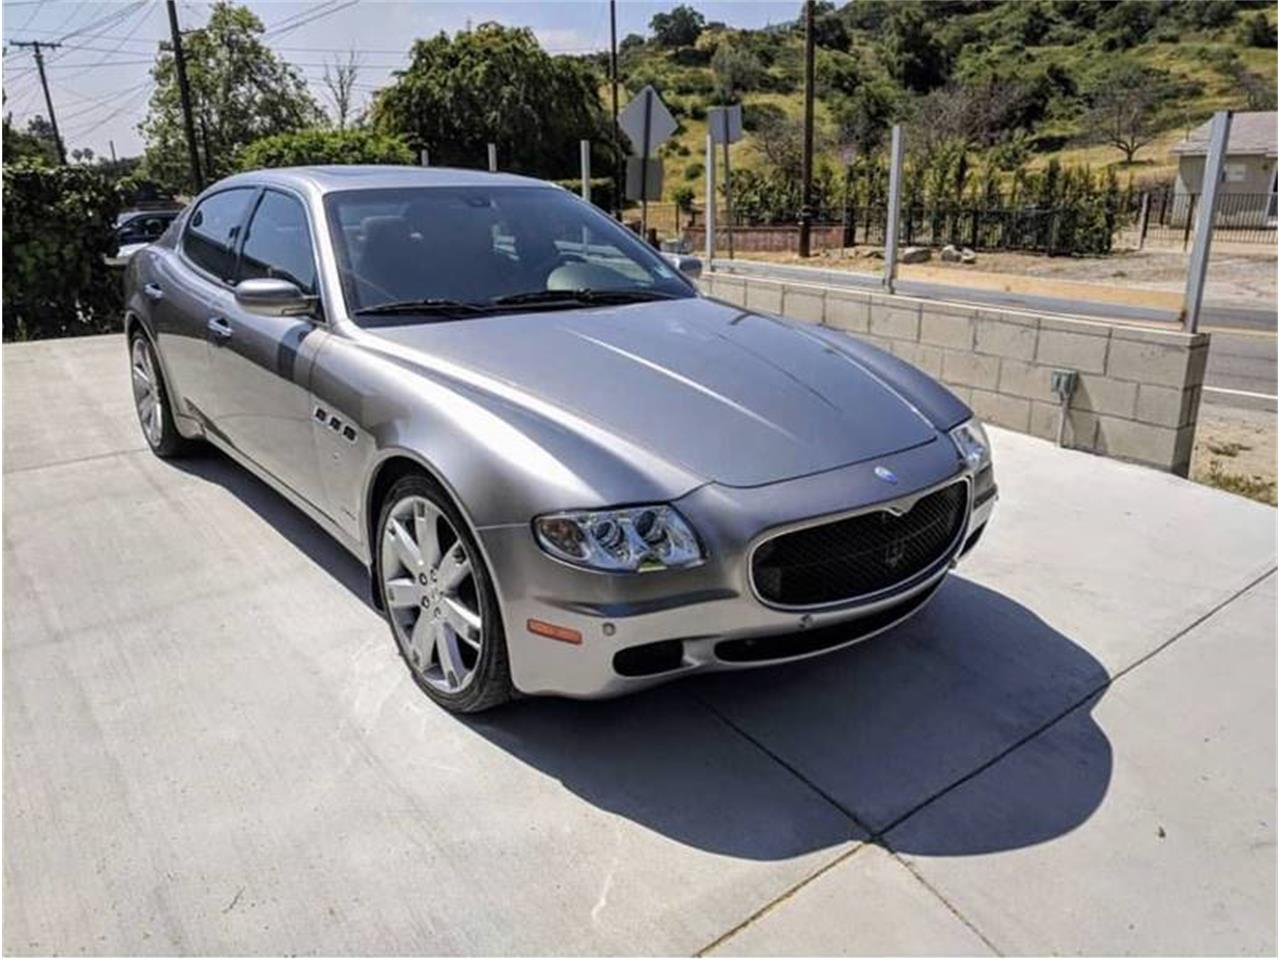 2007 Maserati Quattroporte for sale in Long Island, NY – photo 2